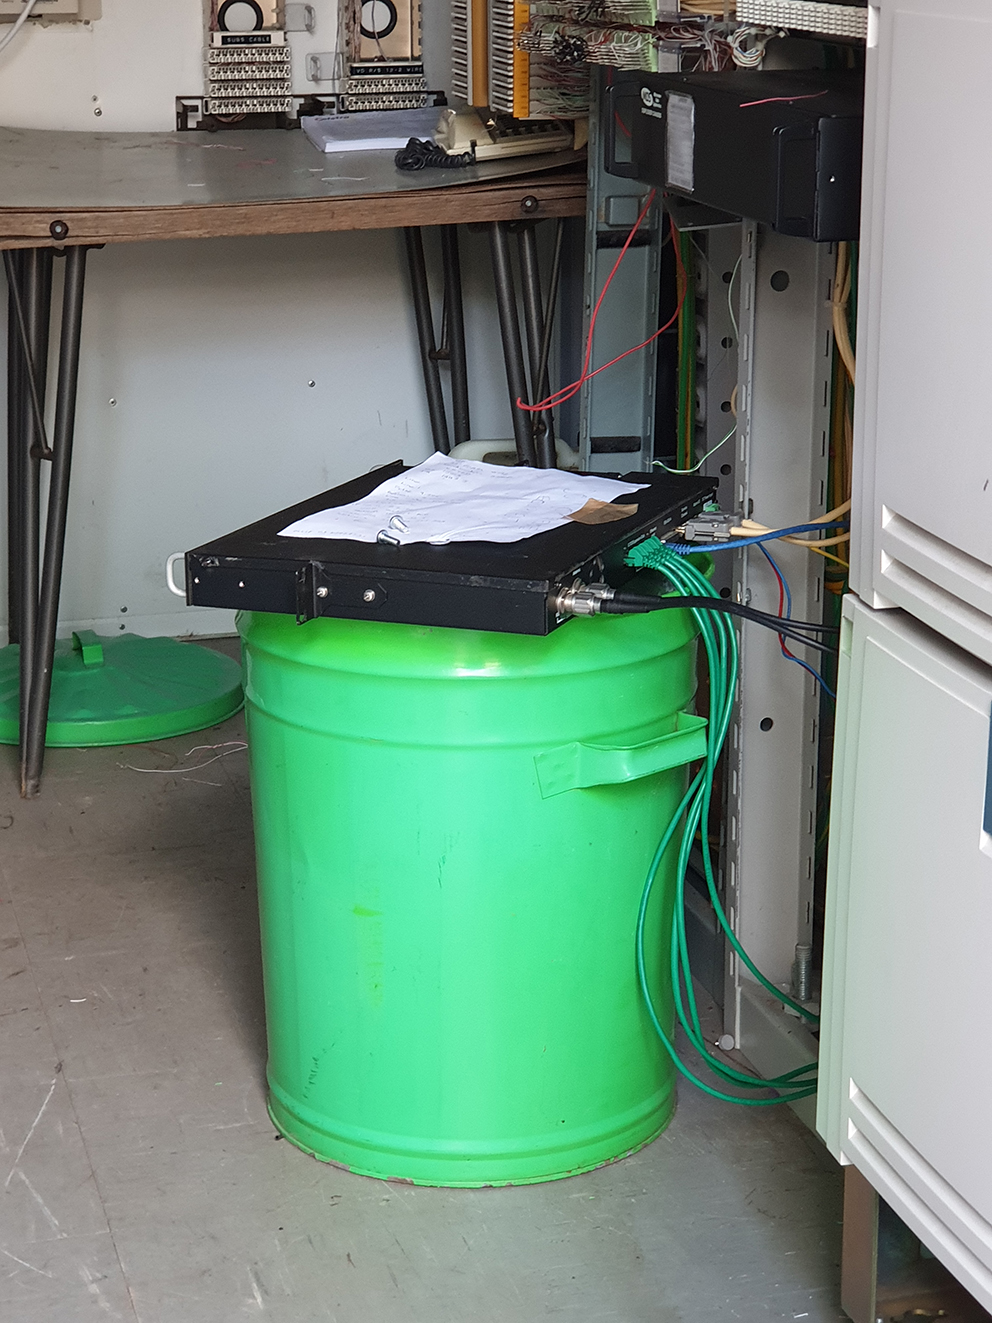 Microwave Transmitter taped to Garbage Can